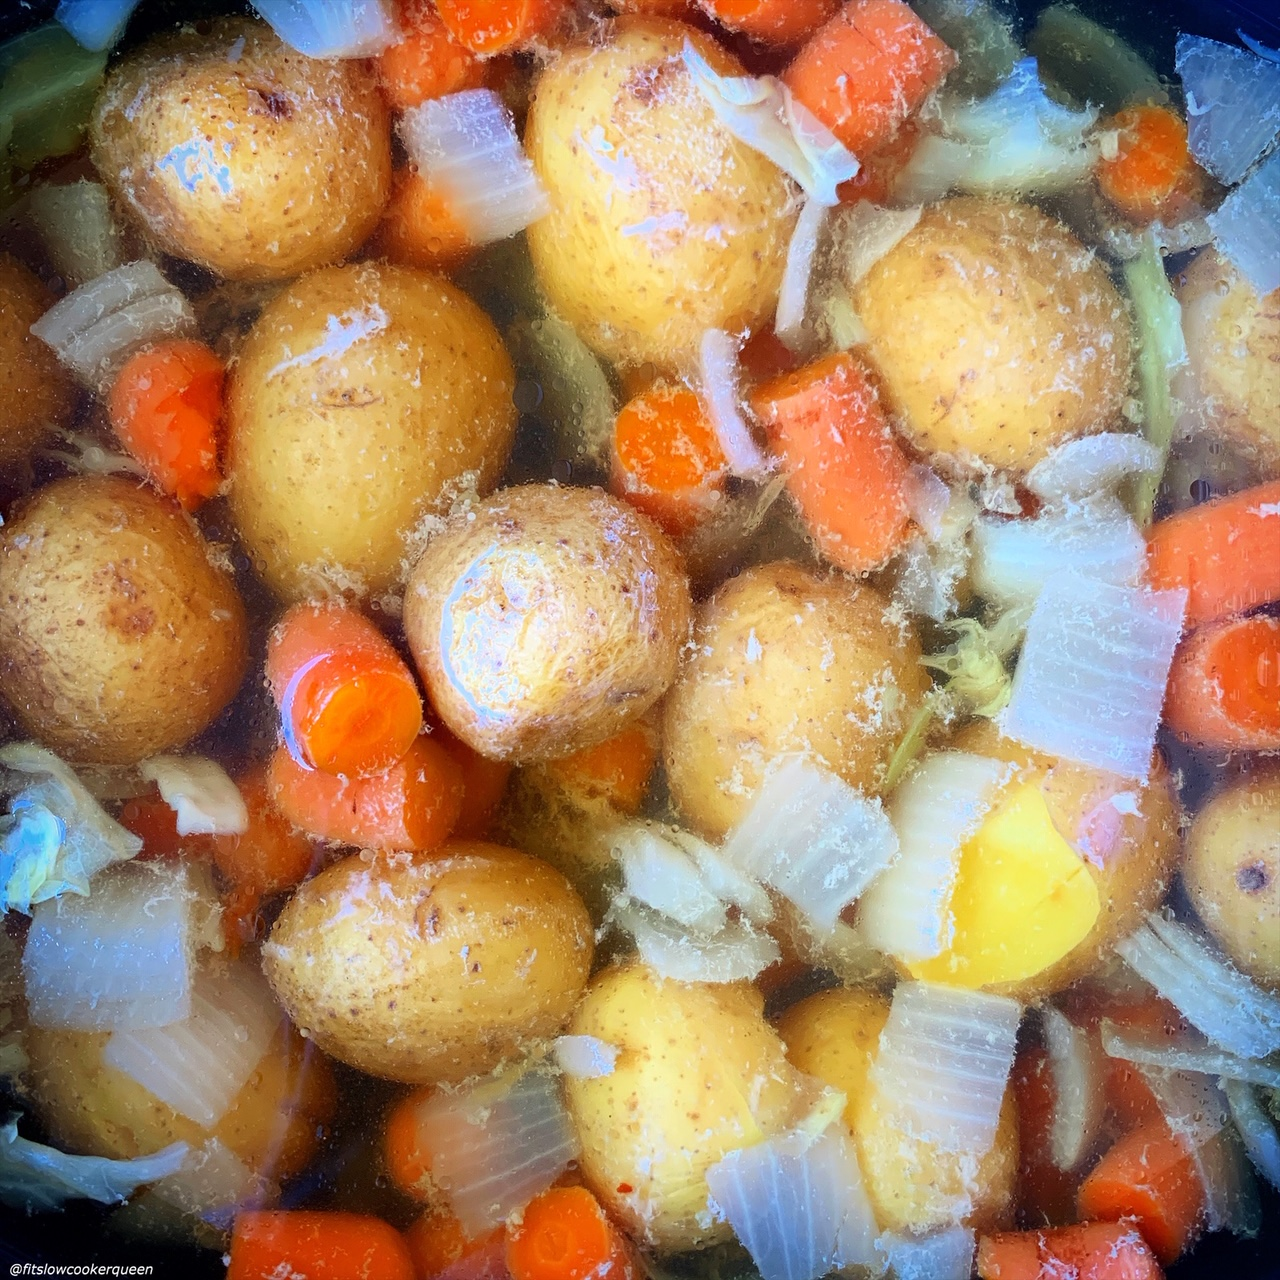 cooked potatoes, carrots & onions